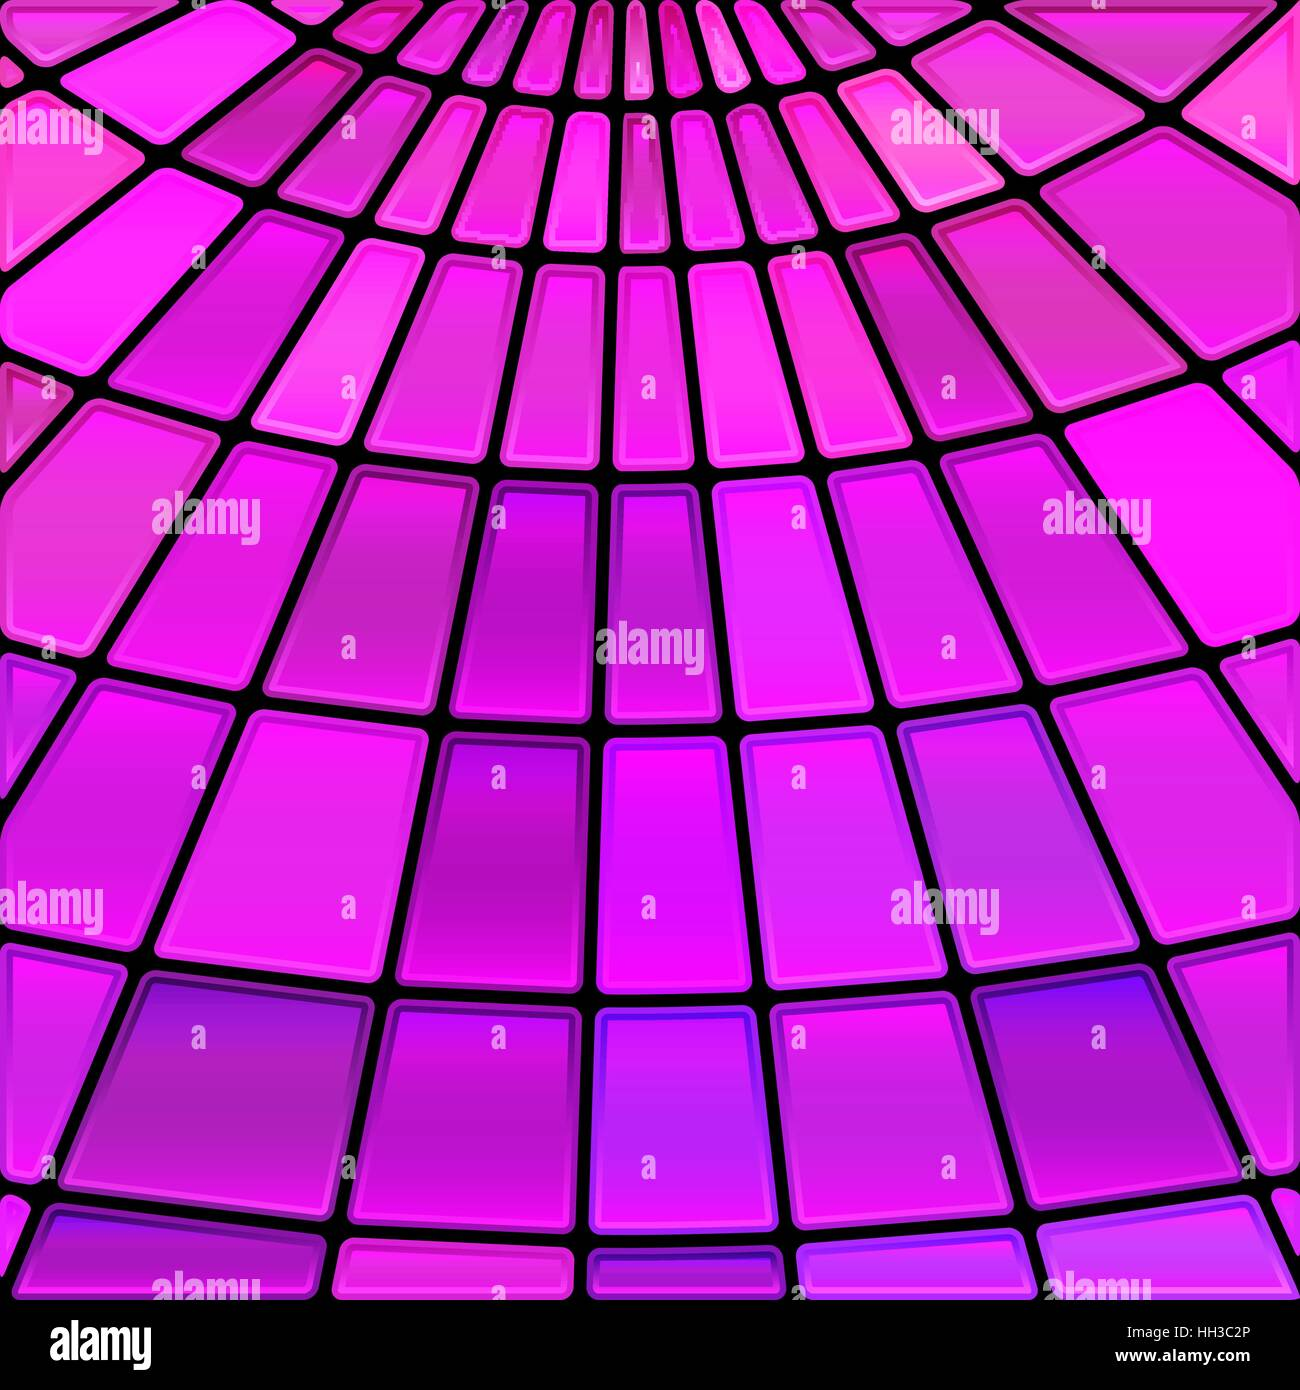 abstract vector stained-glass mosaic background - purple and magenta - Stock Image